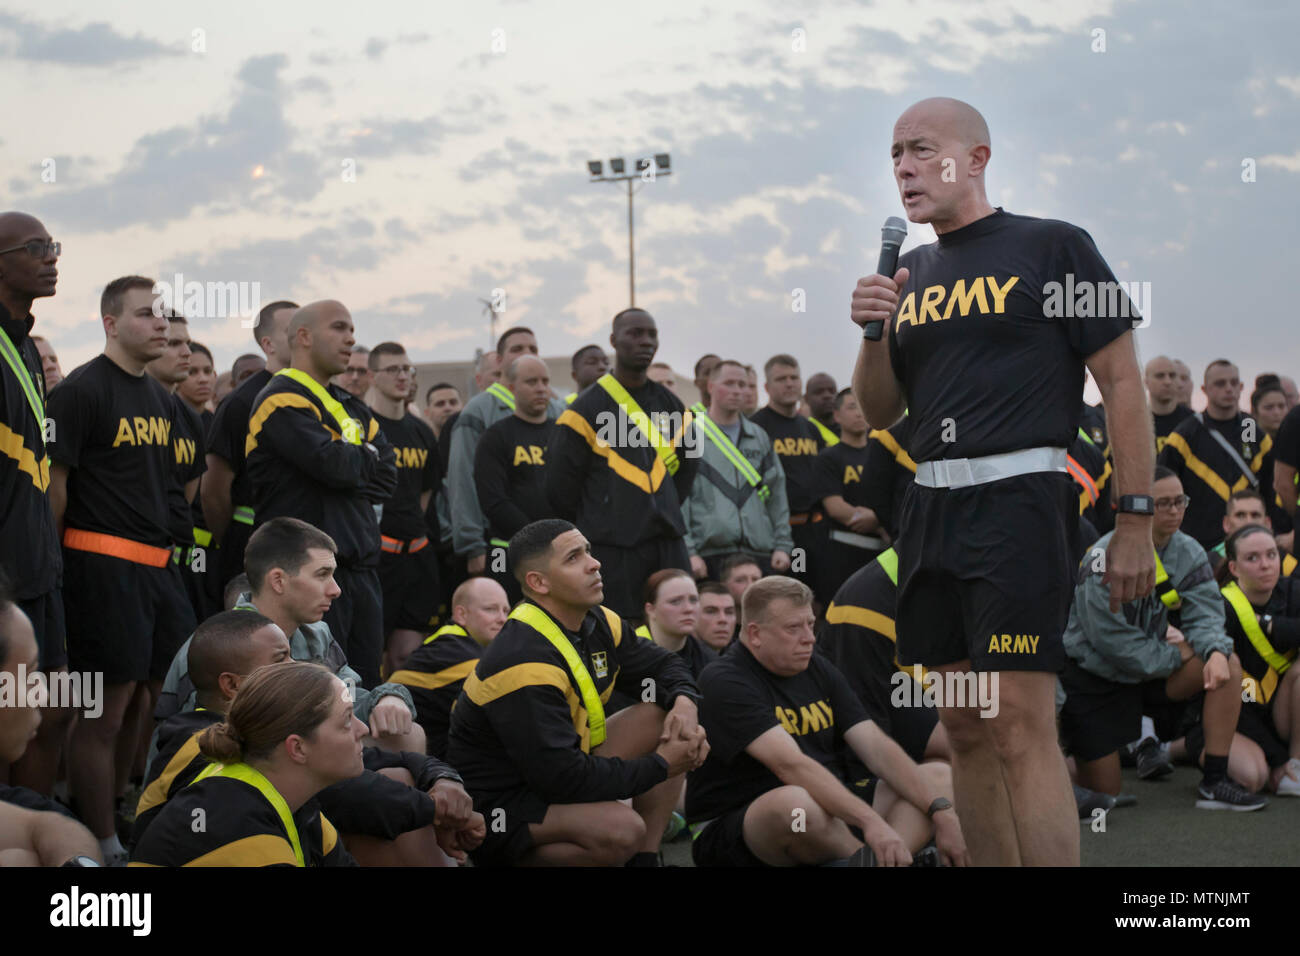 U.S. Army Reserve Commanding General, Lt. Gen. Charles D. Luckey, speaks with Soldiers from the 316th Sustainment Command (Expeditionary), a U.S. Army Reserve command from Coraopolis, PA, at Camp Arifjan, Kuwait, Jan. 10, 2017. 'There is no better place for a leader to be than with their troops downrange,' said Luckey as he spoke with Soldiers about the capabilities, need, and importance of their missions overseas. The 316th ESC mission in Kuwait is to support the 1st Theater Sustainment Command mission of providing logistics support throughout the CENTCOM area of operations. (U.S. Army photo  - Stock Image